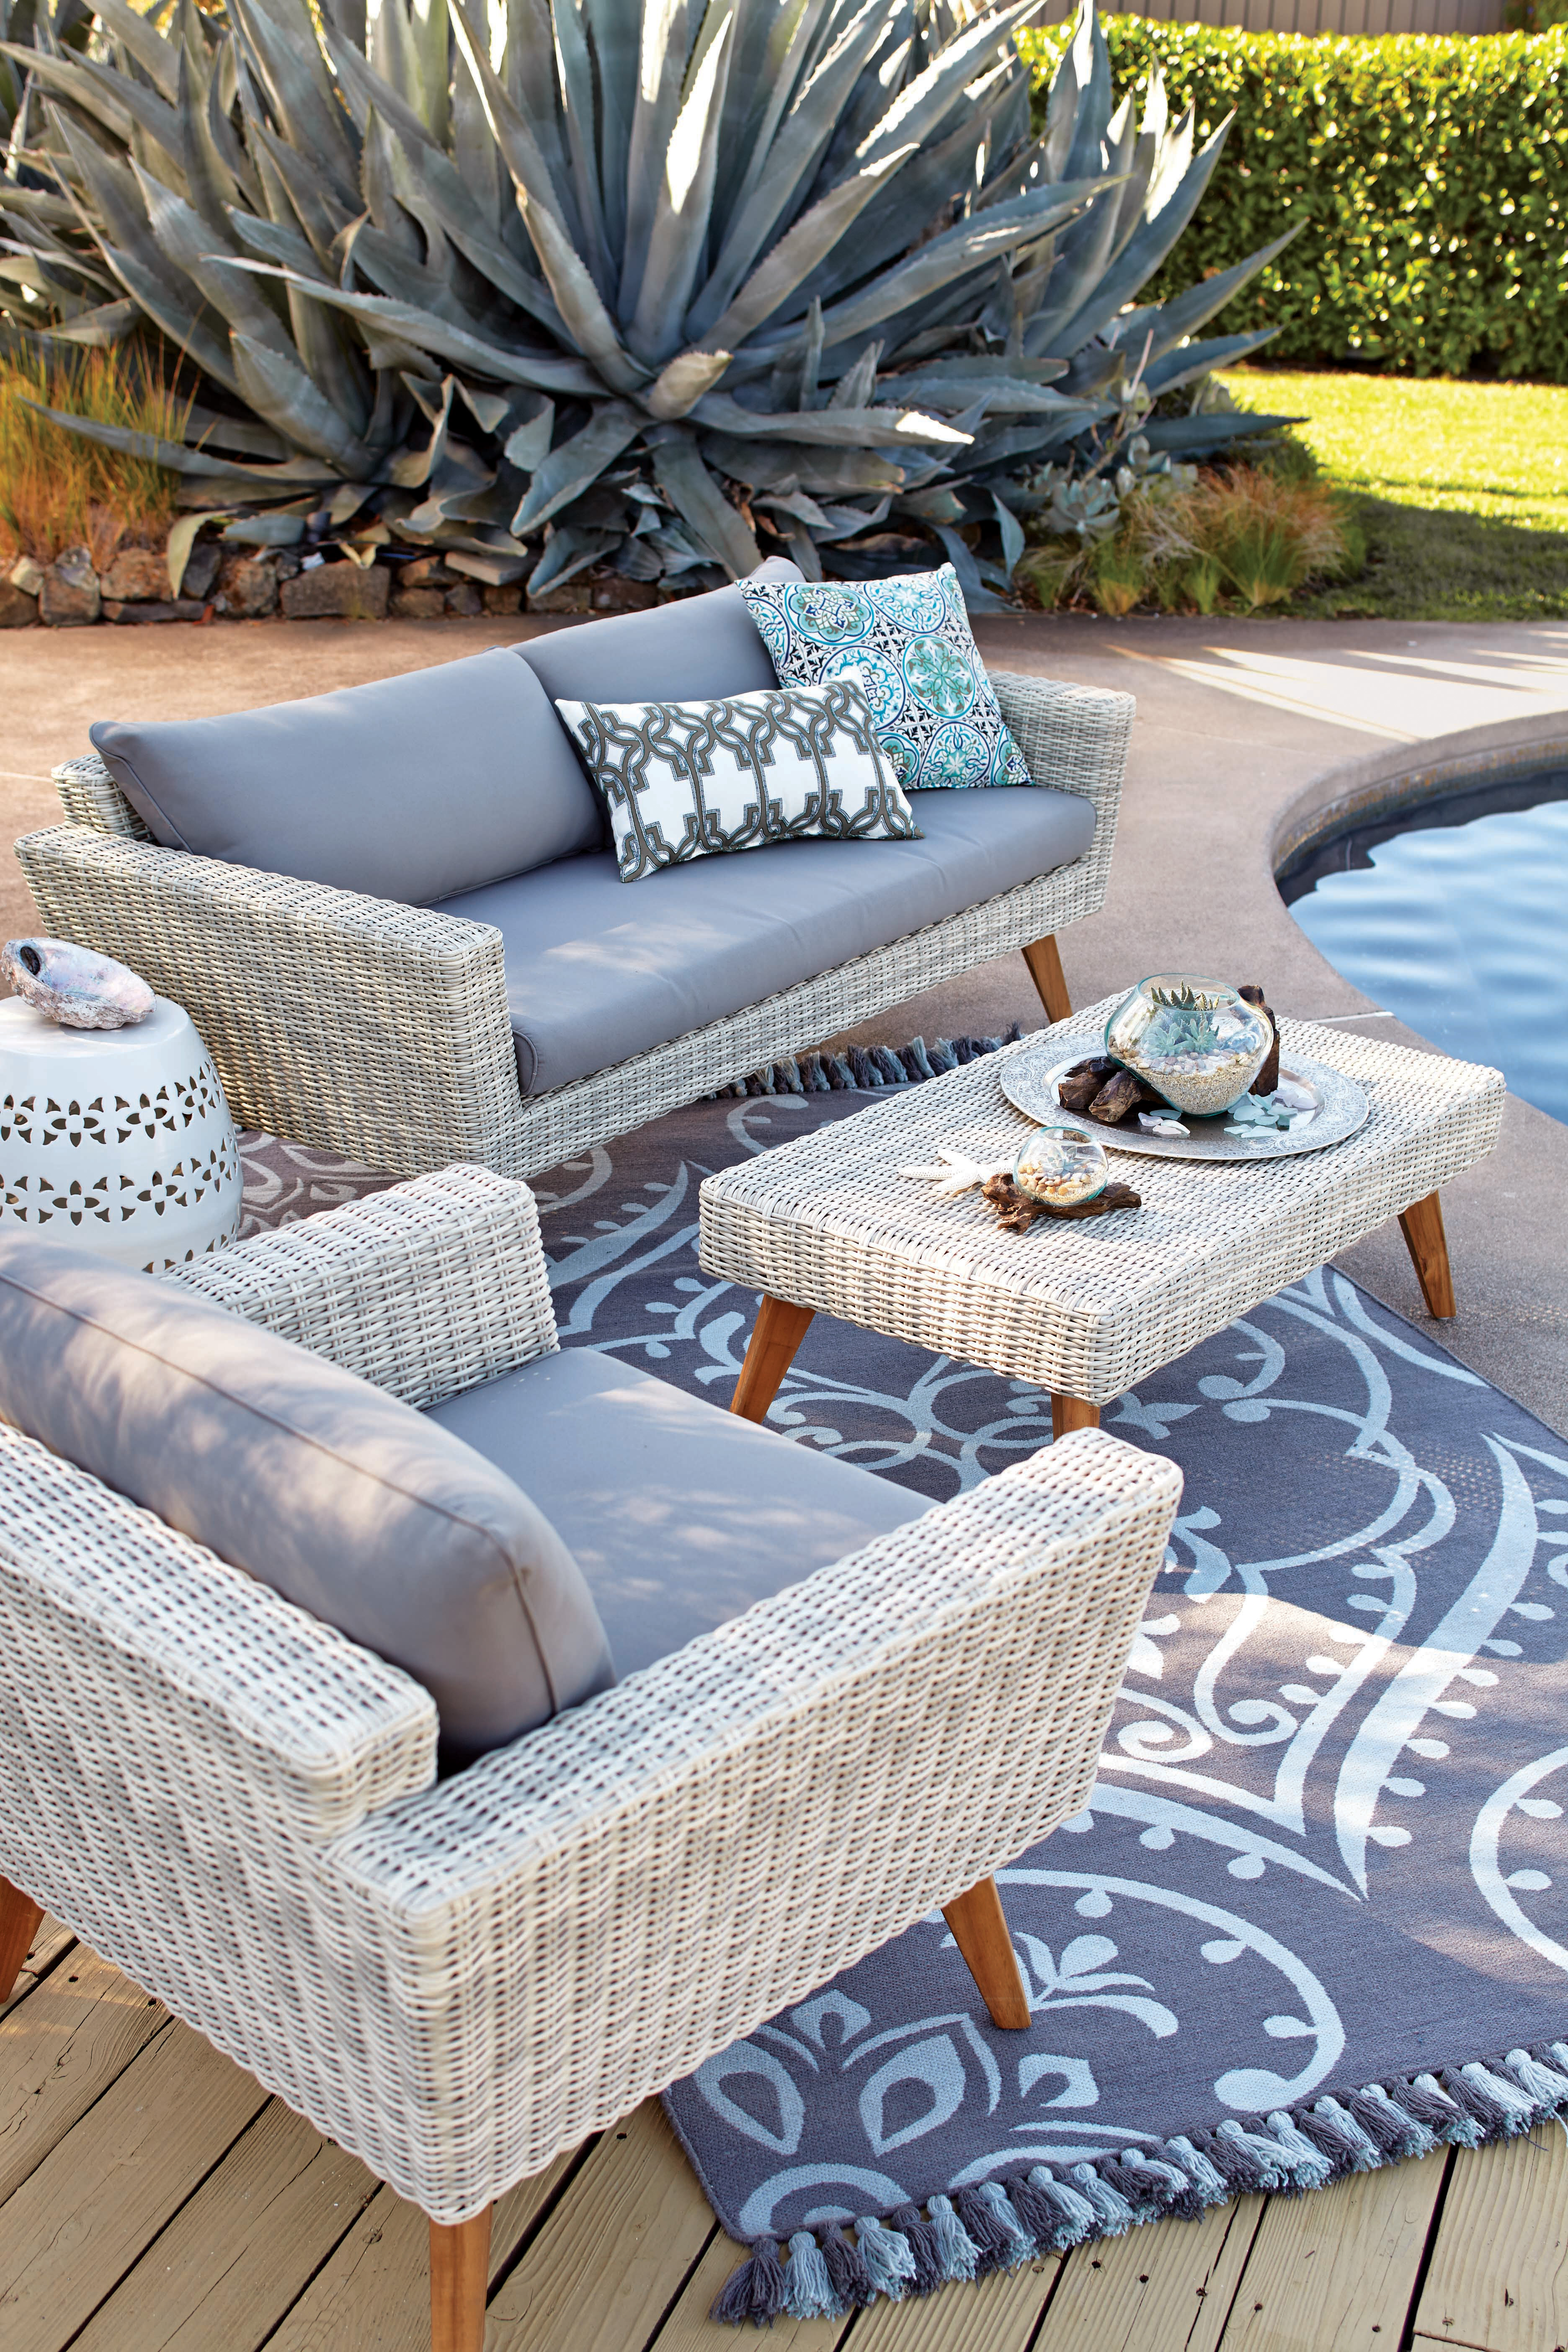 Cost Plus World Market Makes Outdoor Entertaining Easy and Affordable    Business Wire. Cost Plus World Market Makes Outdoor Entertaining Easy and